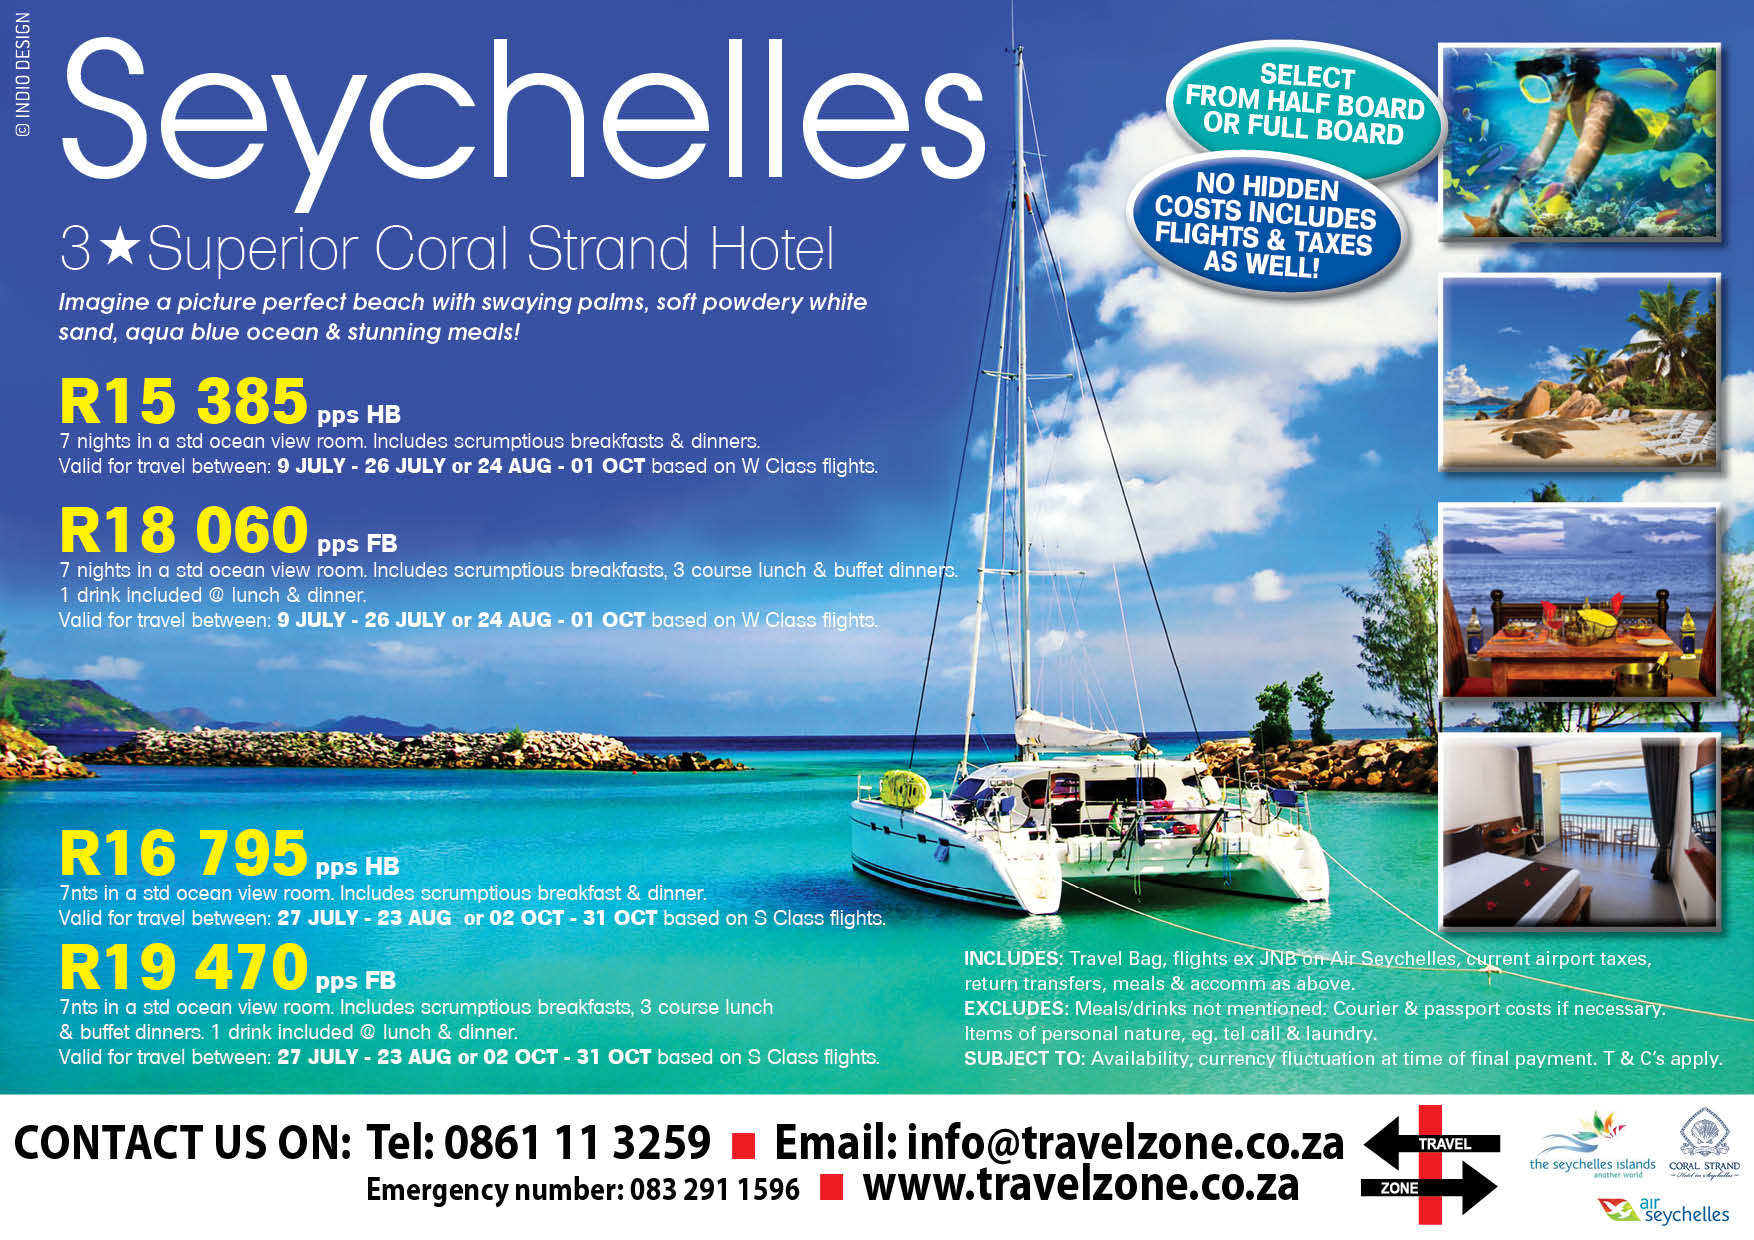 Seychelles Coral Strand database ad